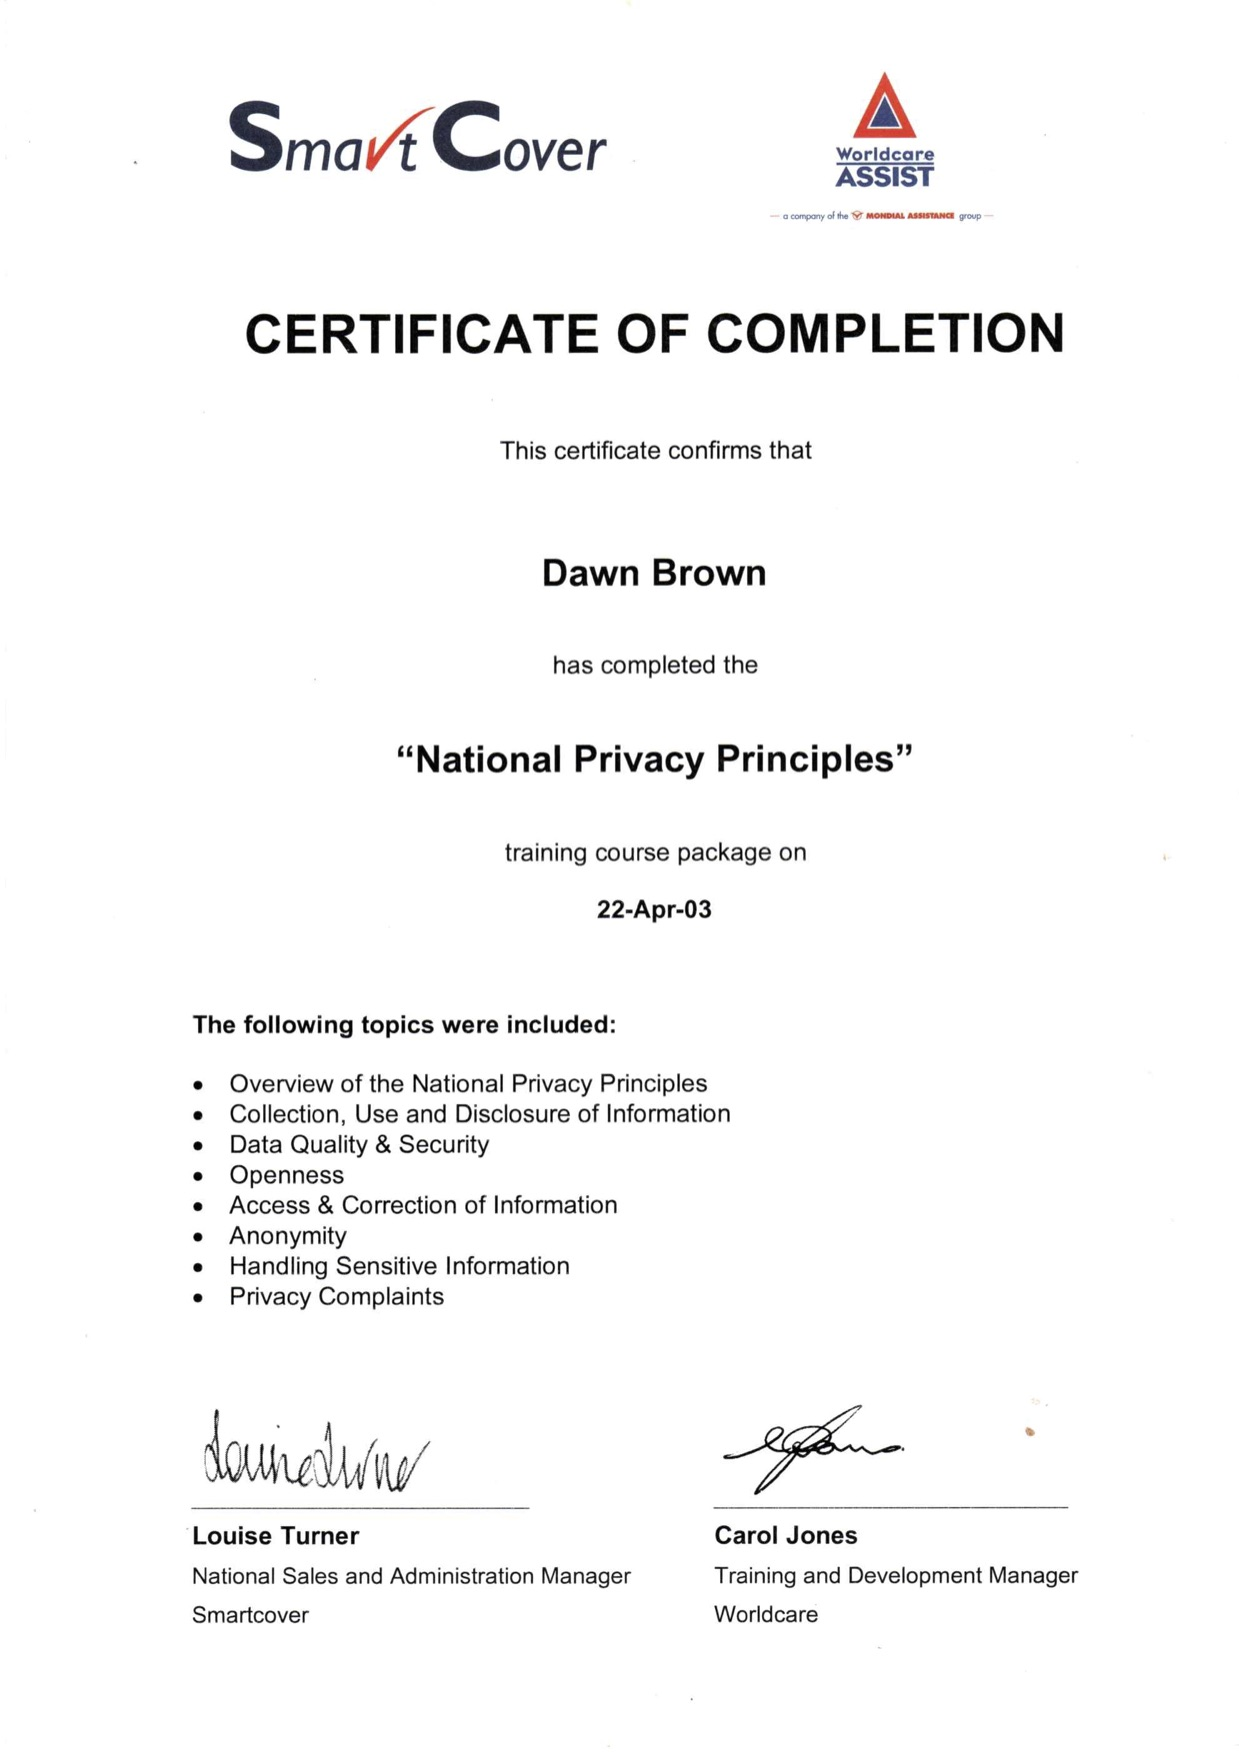 Smart cover national privacy principles training certificate